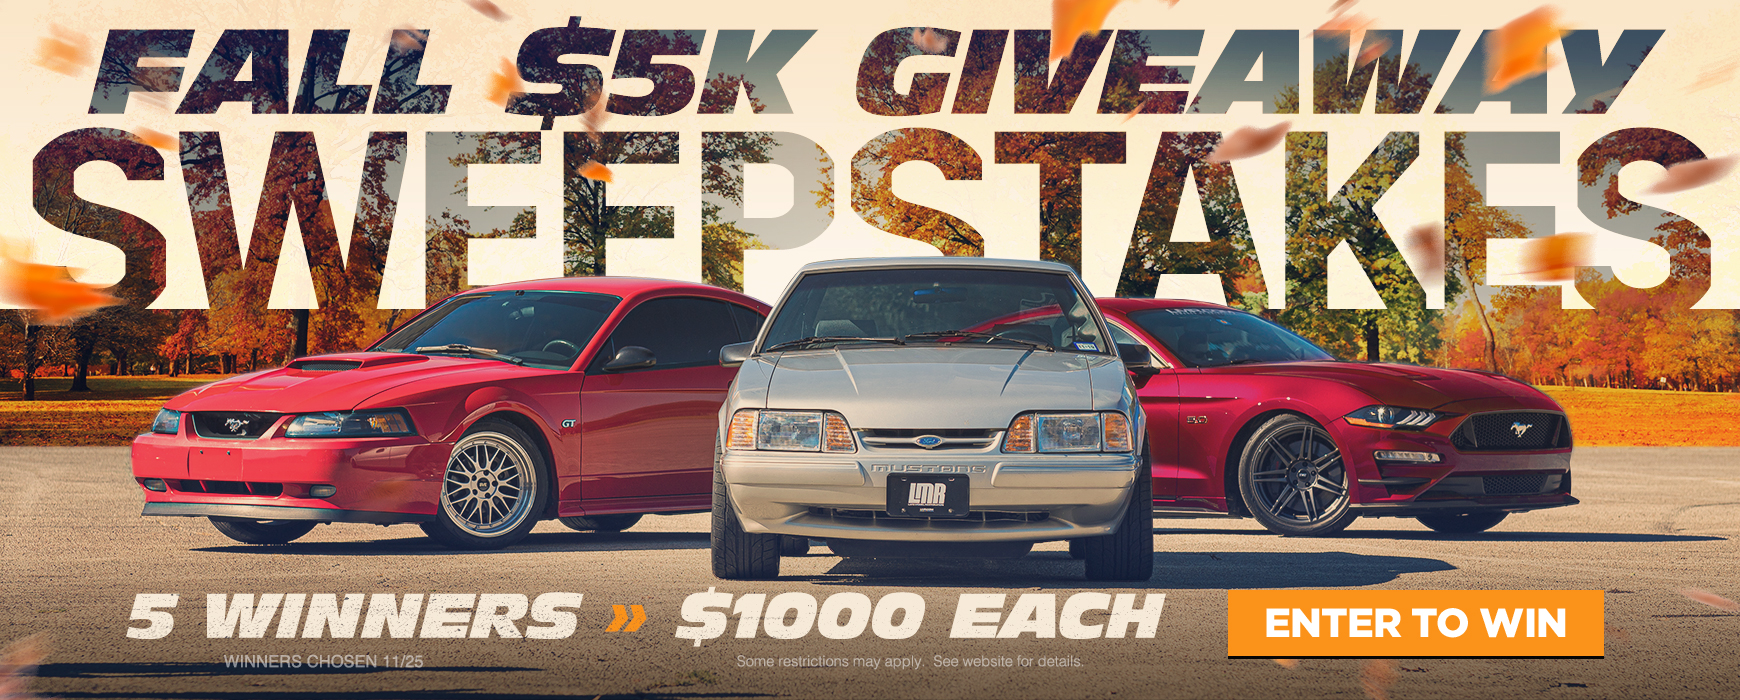 Ford Mustang Fall $5000 Sweepstakes